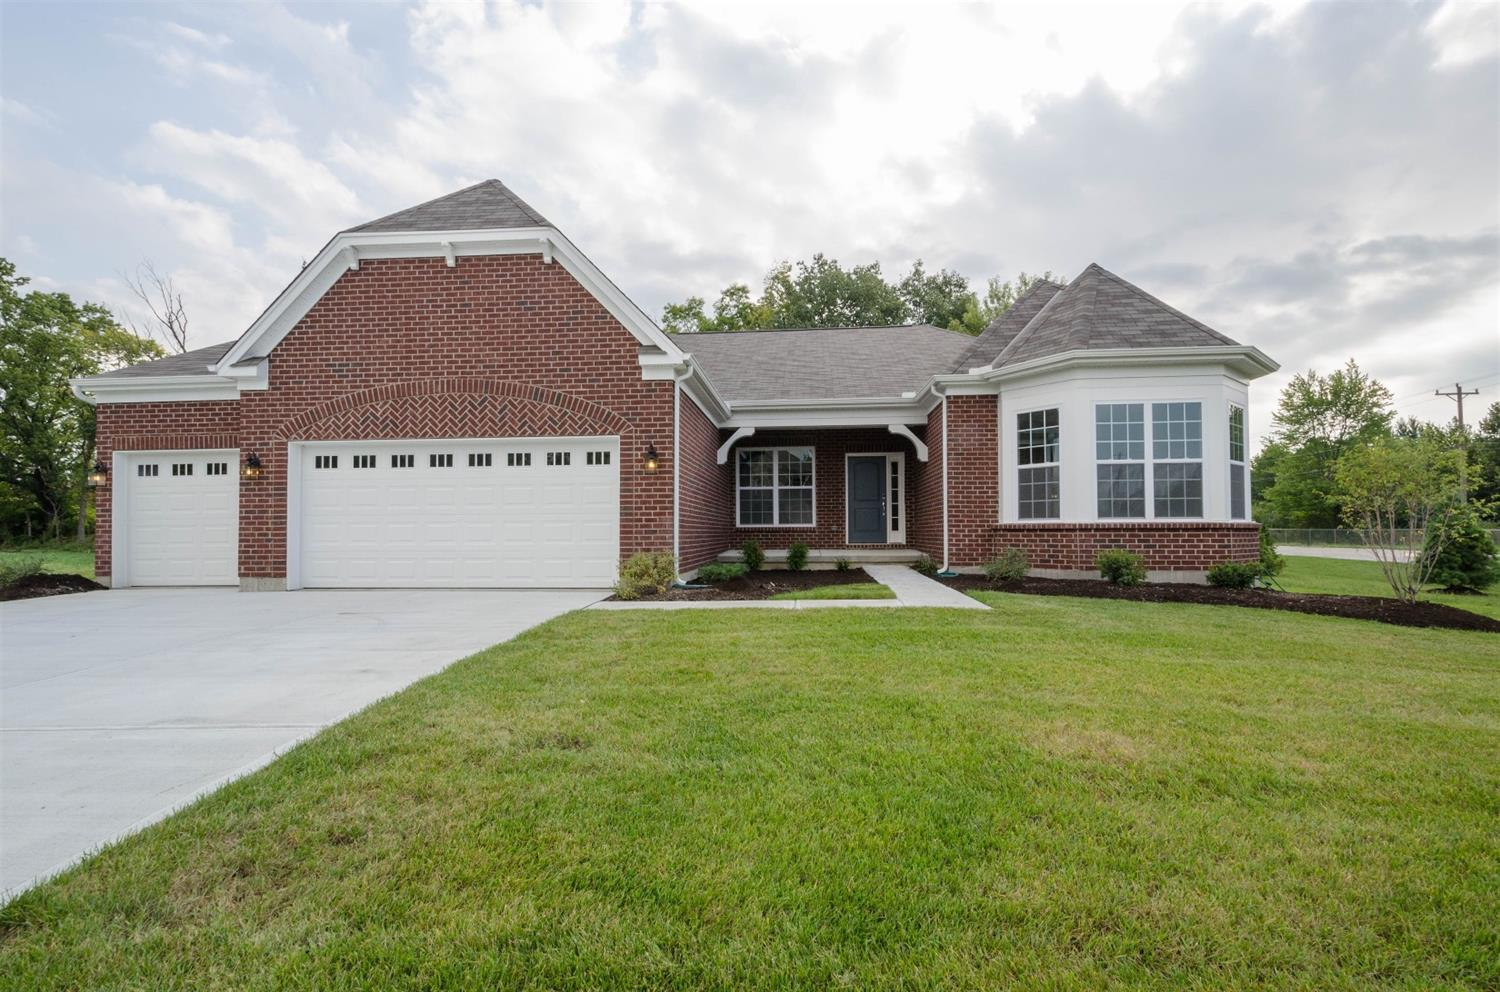 hindu singles in turtle creek Sold: 3 bed, 2 bath house located at 1755 indian grass dr, turtle creek twp, oh 45036 sold for $341,000 on may 8, 2018 mls# 1546265 lot# 359 new construction and stunning ranch home in.